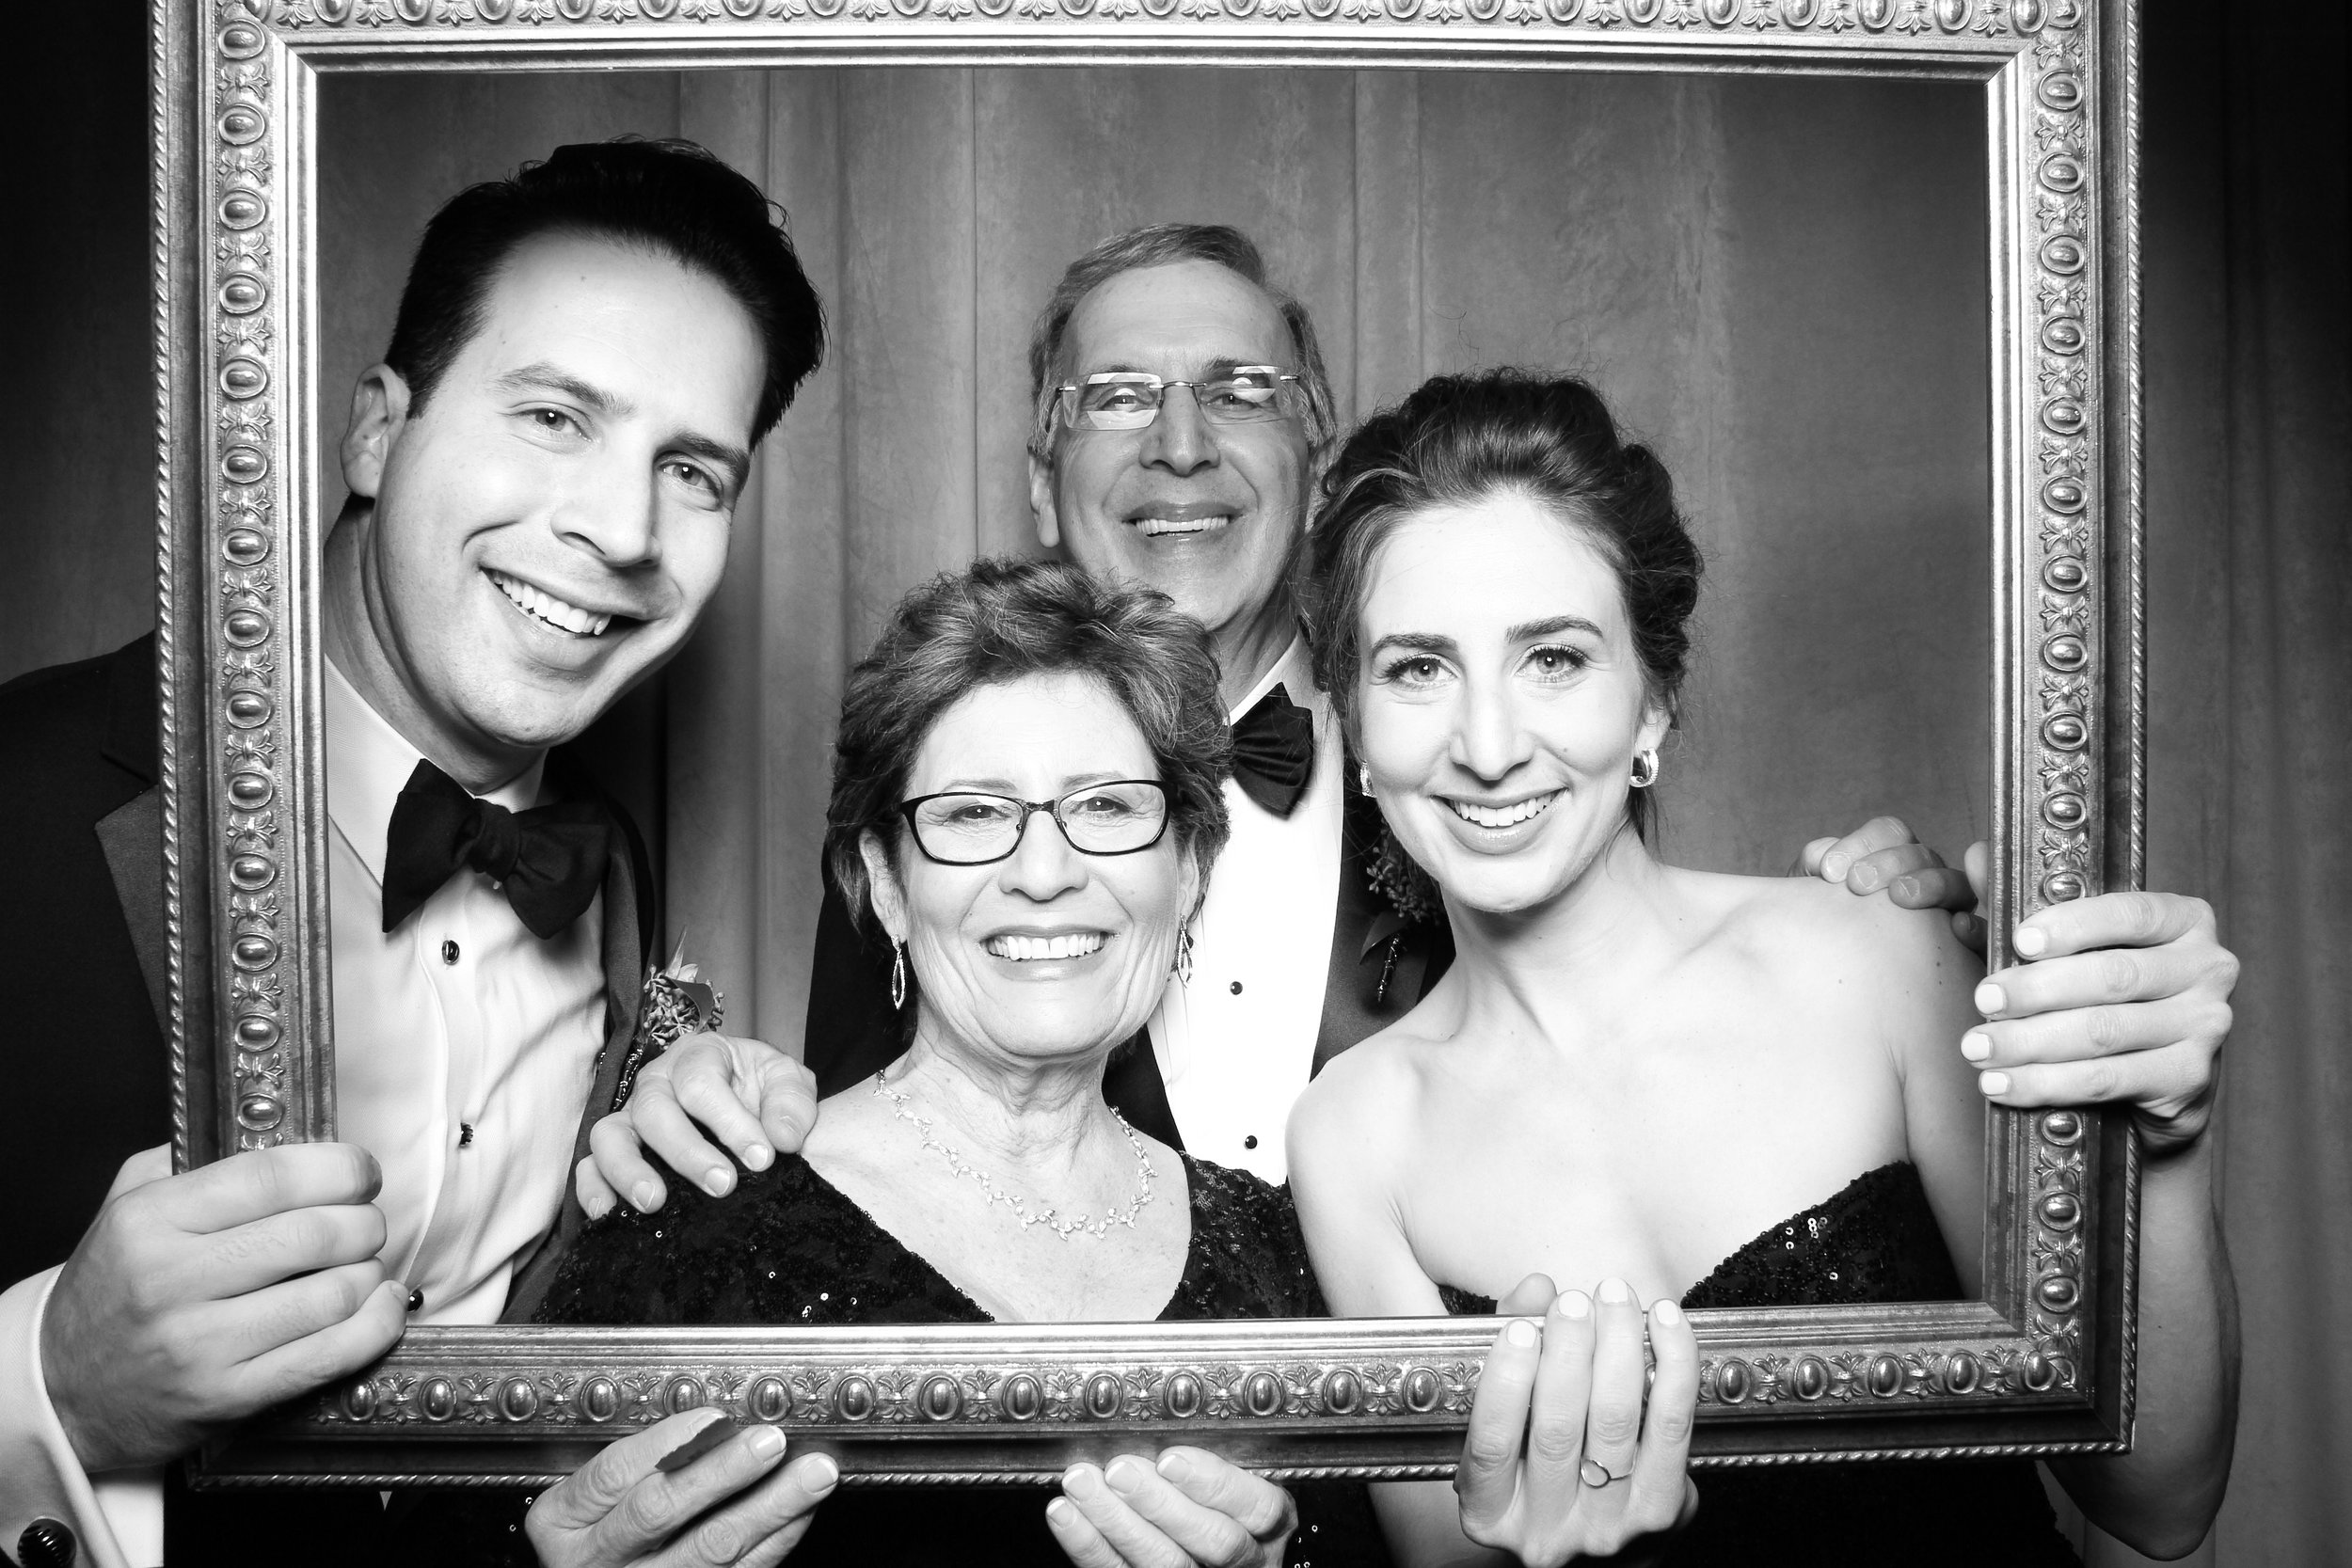 Chicago_Vintage_Wedding_Photobooth_Four_Seasons_18.jpg